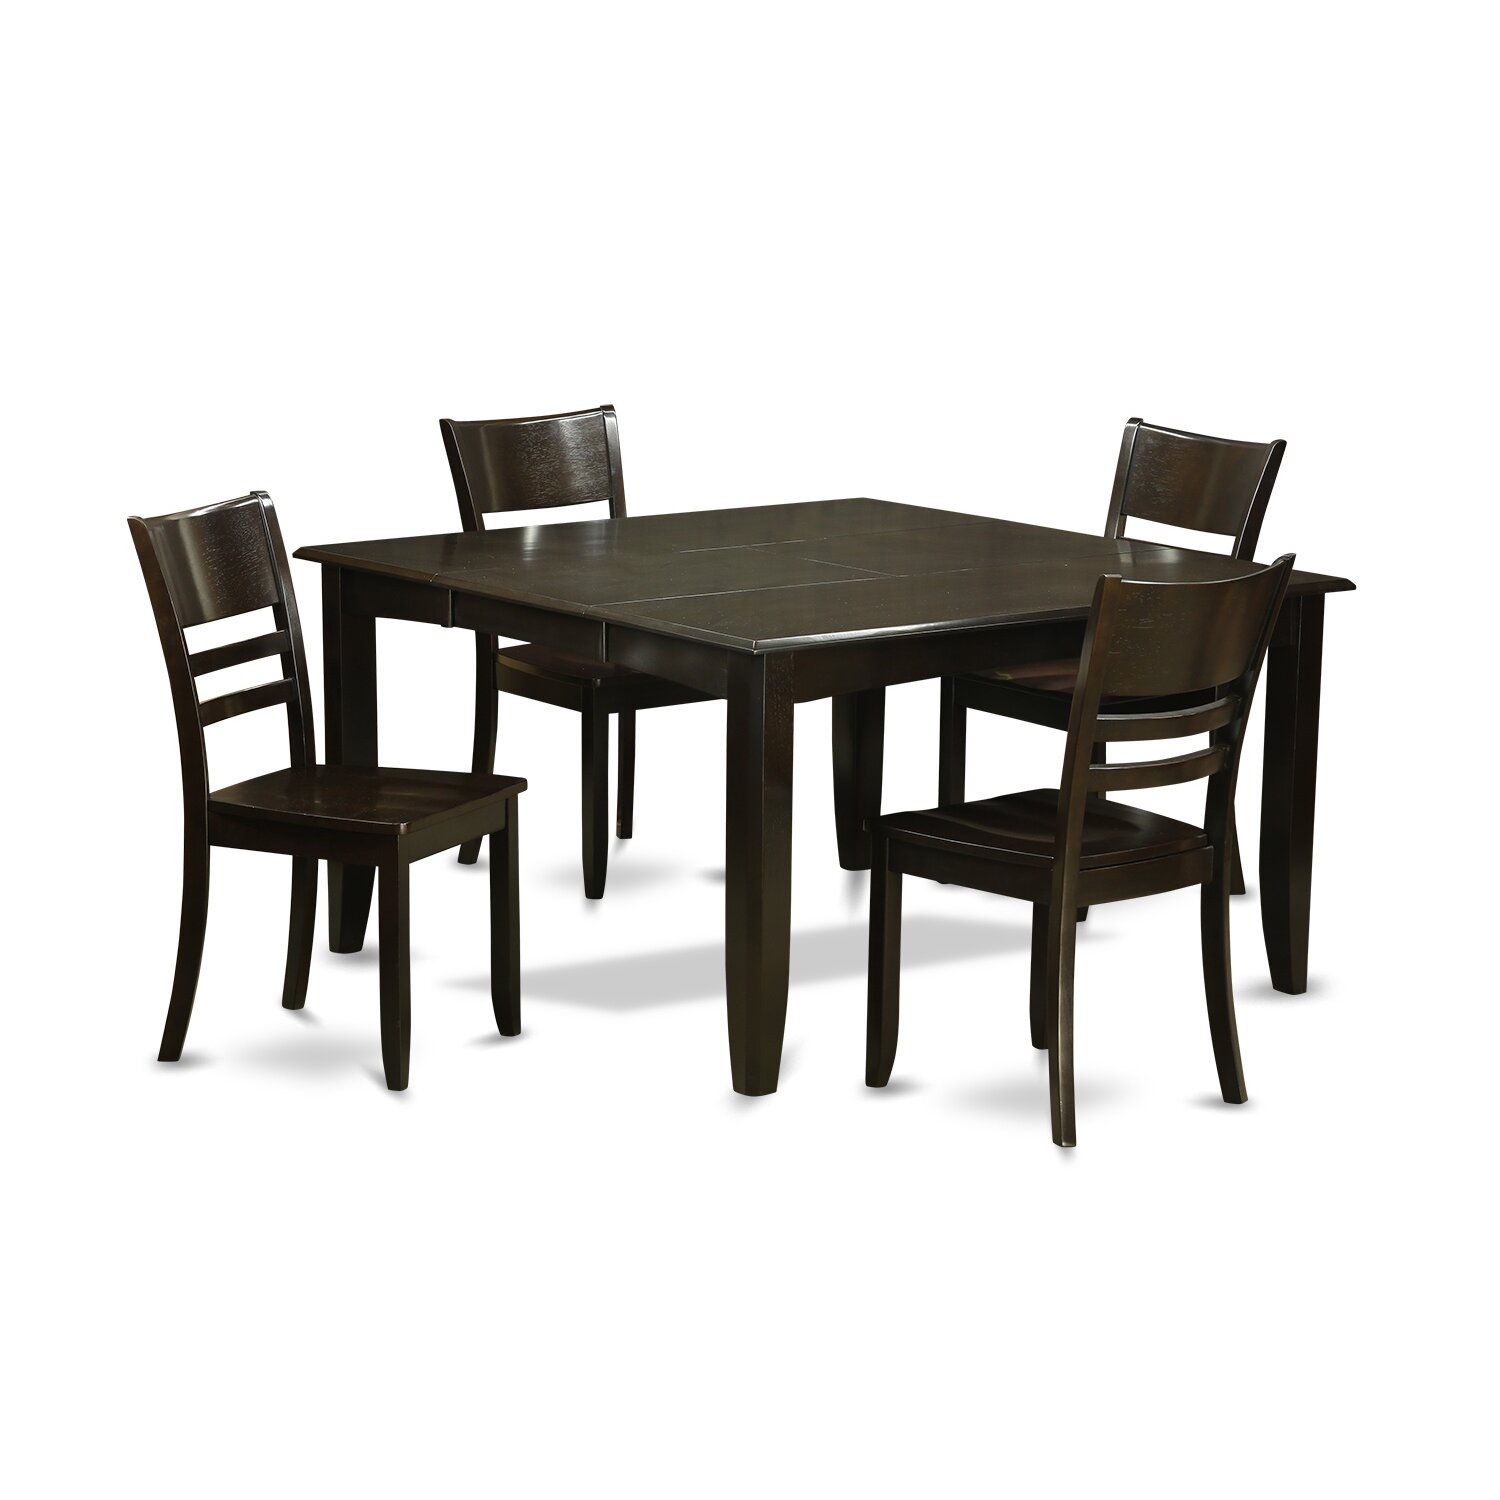 Wooden importers parfait 5 piece dining set wayfair for Kitchen dining sets